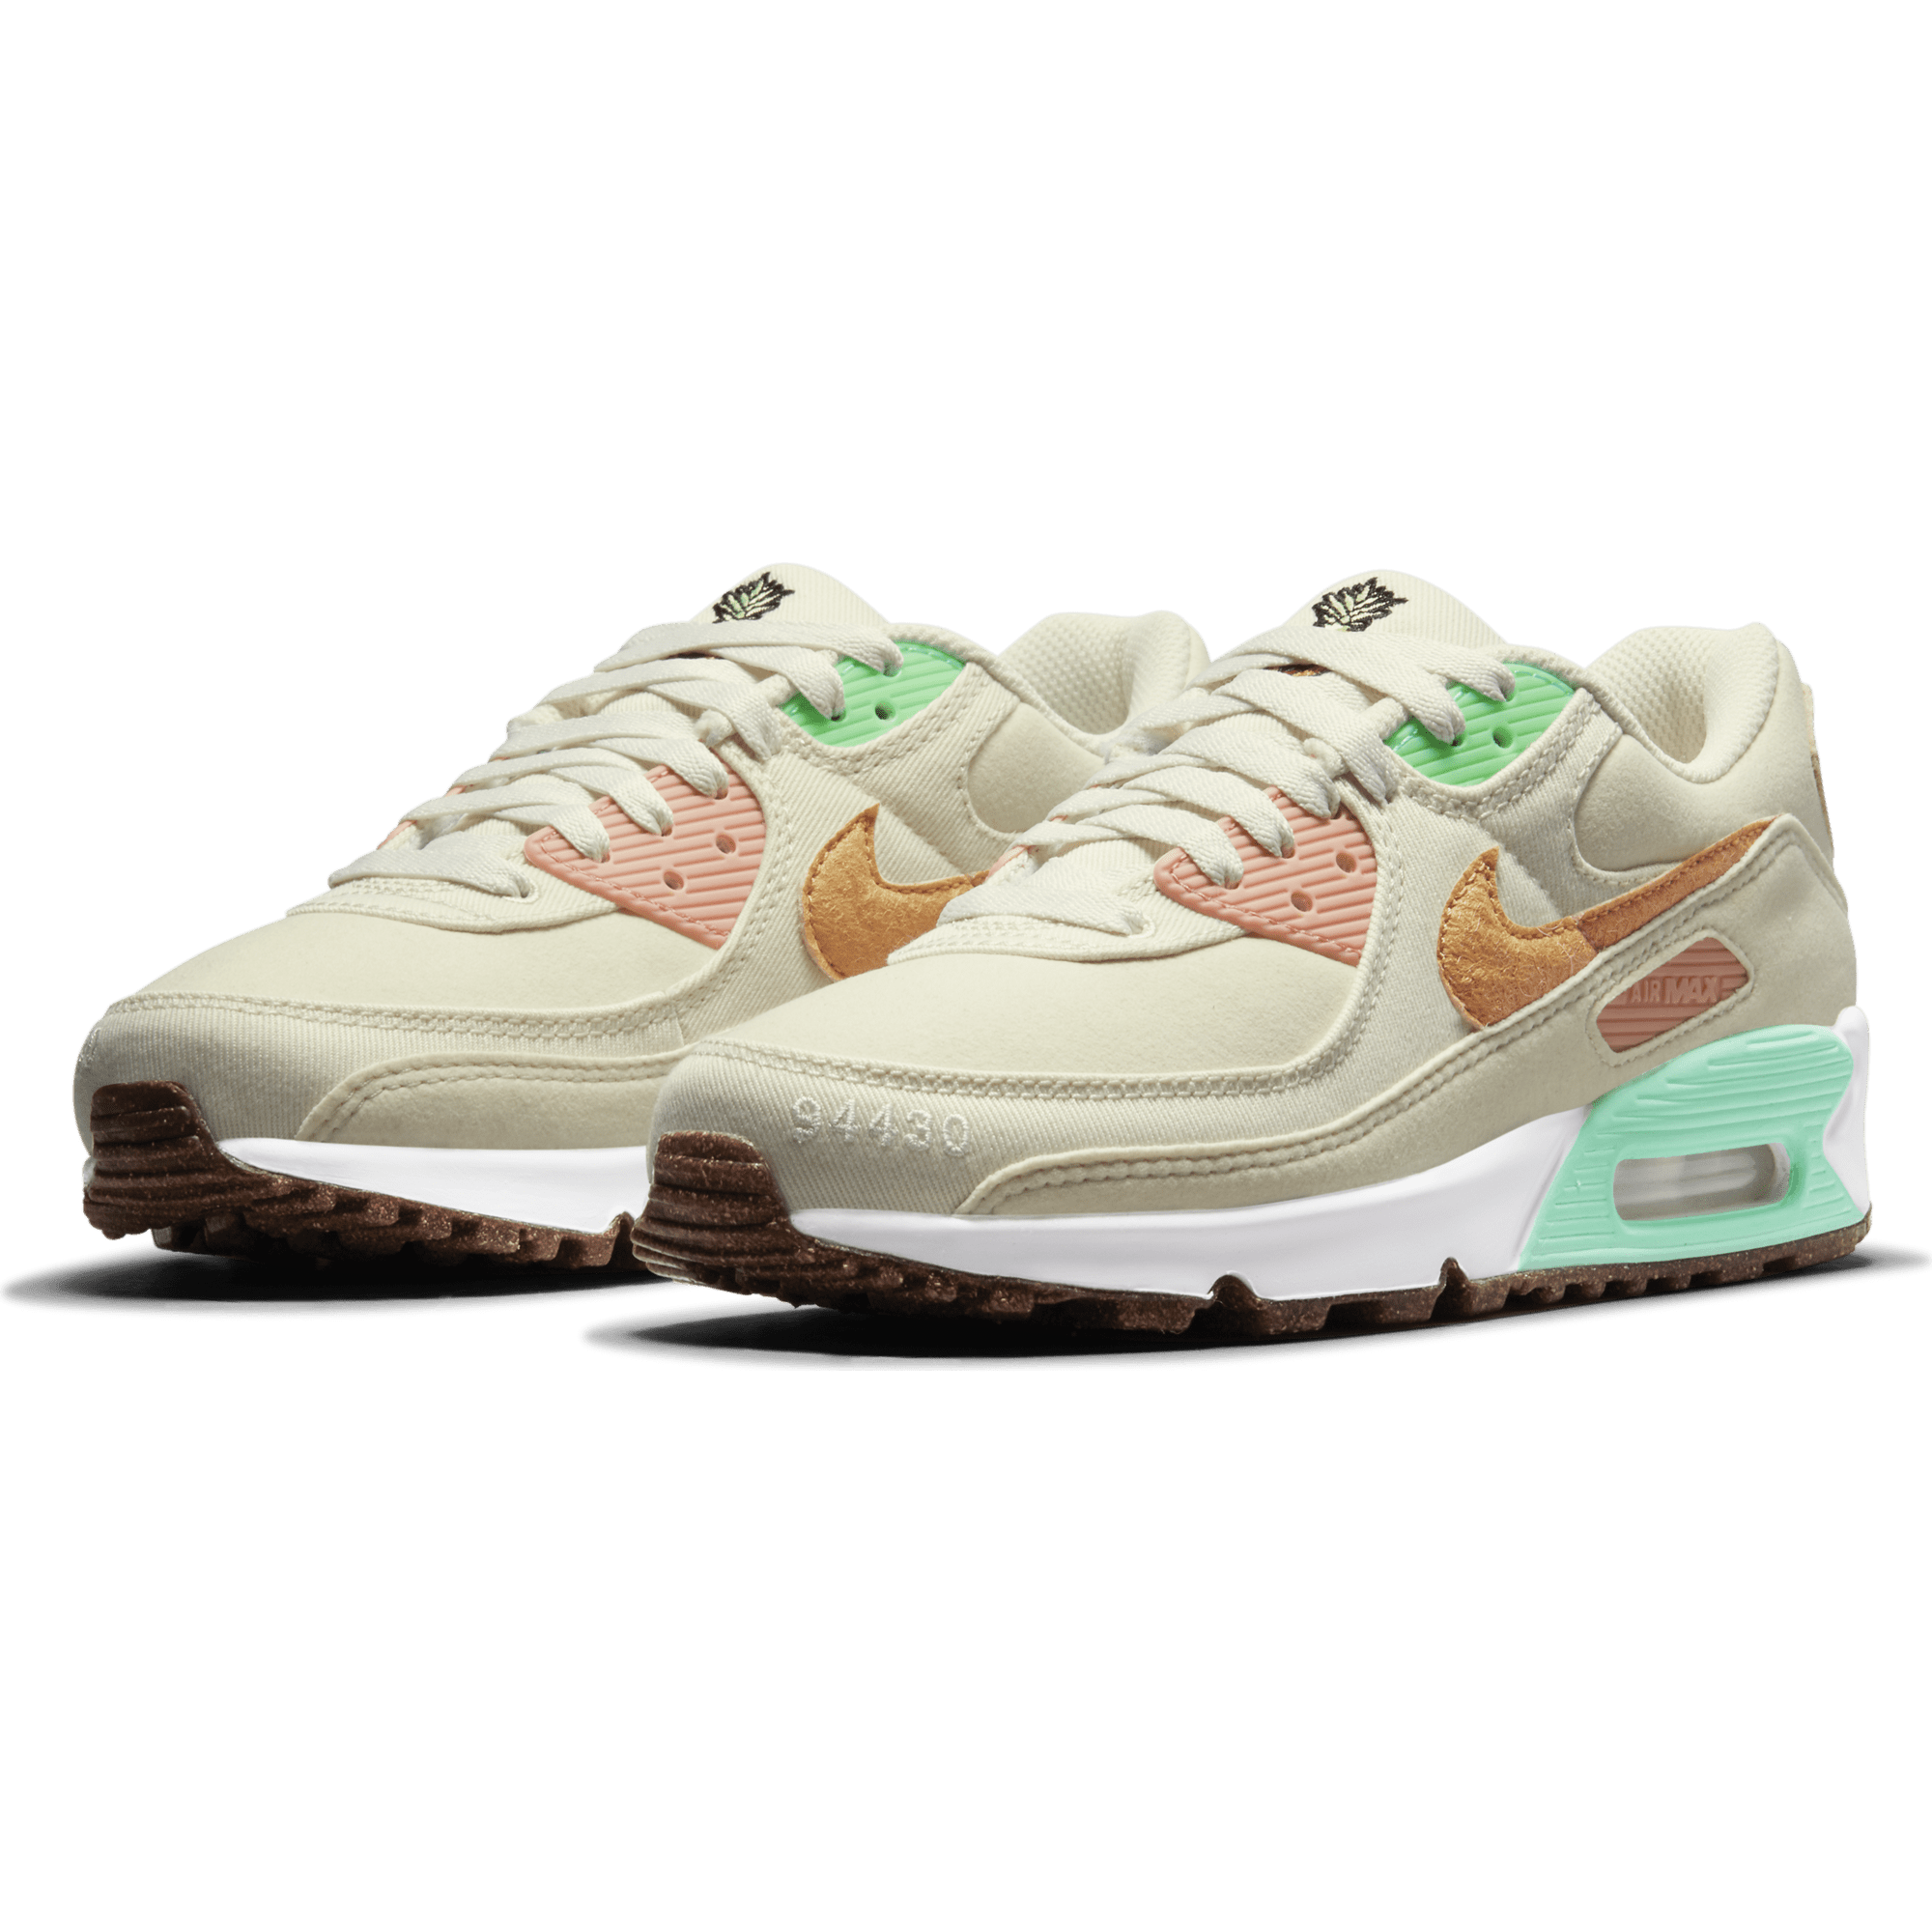 Nike FOOTWEAR Nike Air Max 90 LX - Women's